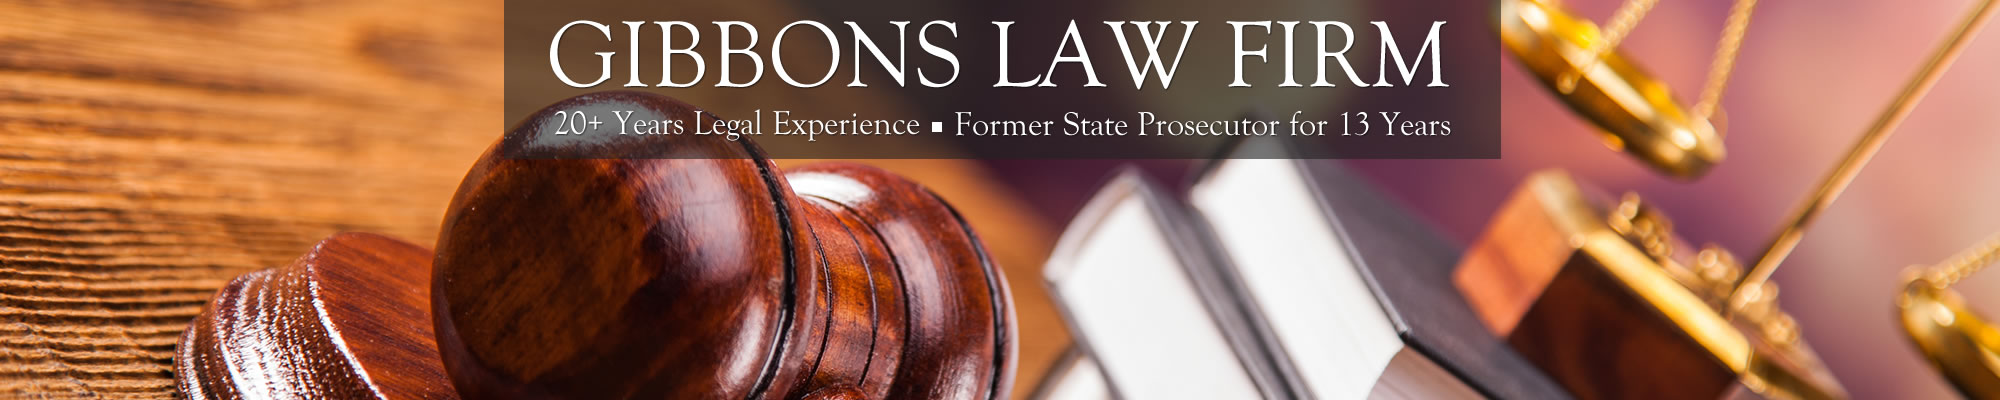 Gibbons Law Firm Lake of the Ozarks